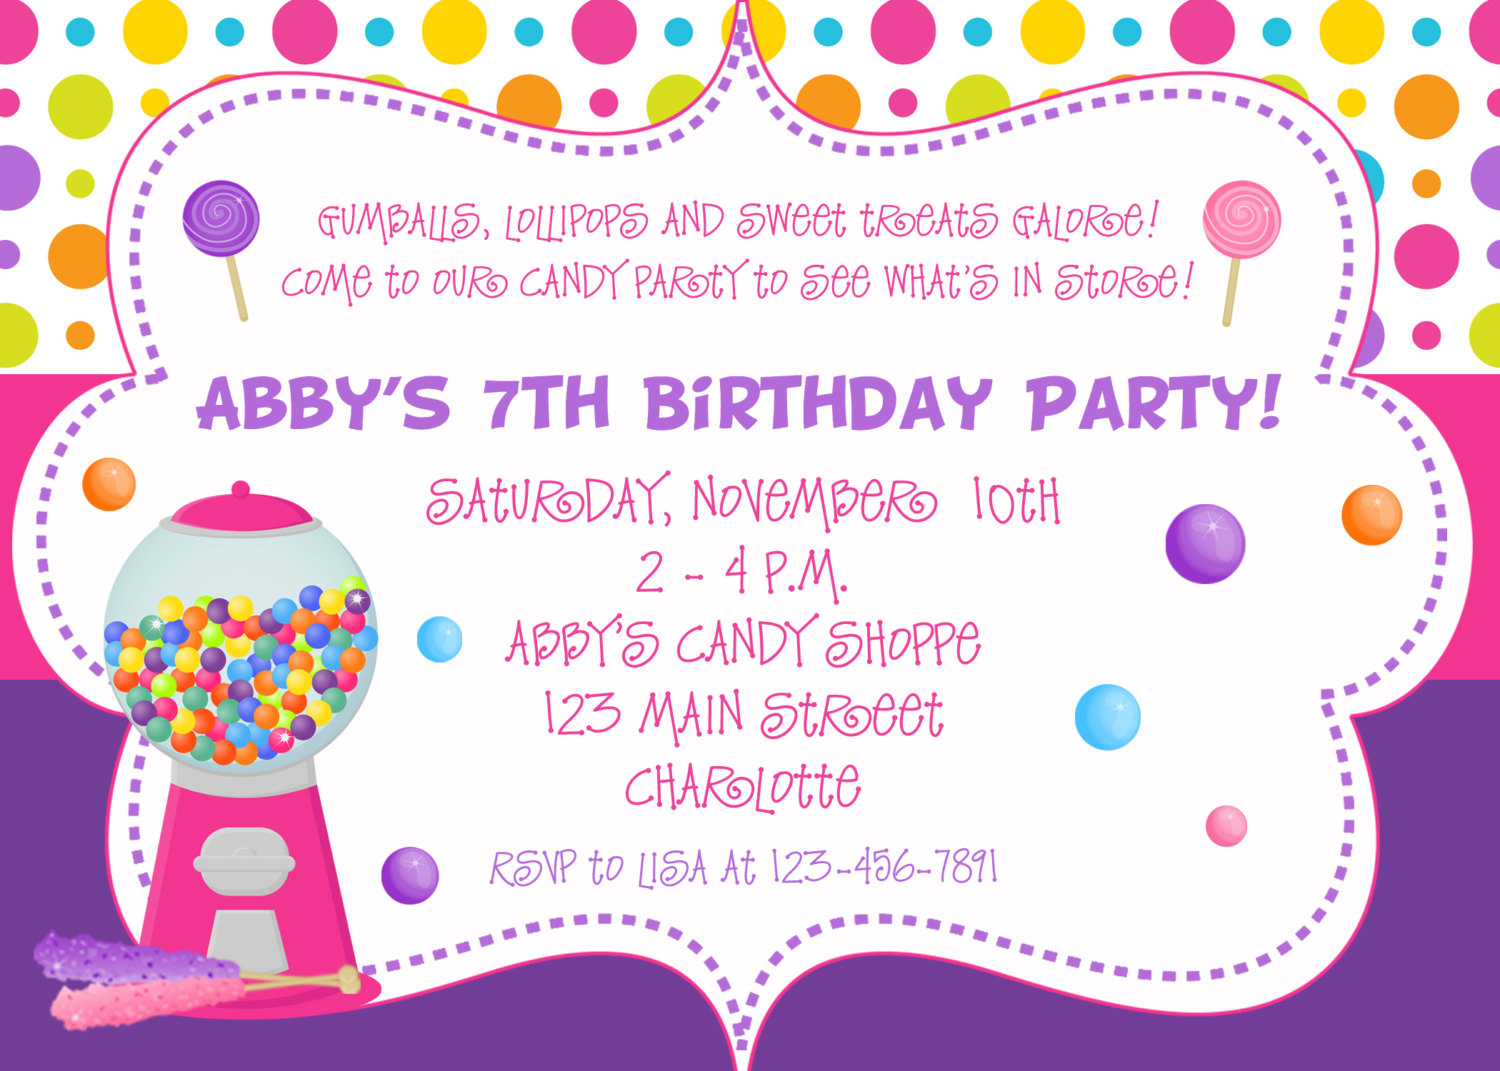 10 years birthday invitation cards ; invitations-for-birthday-party-is-sensational-ideas-which-can-be-applied-into-your-Party-invitation-1